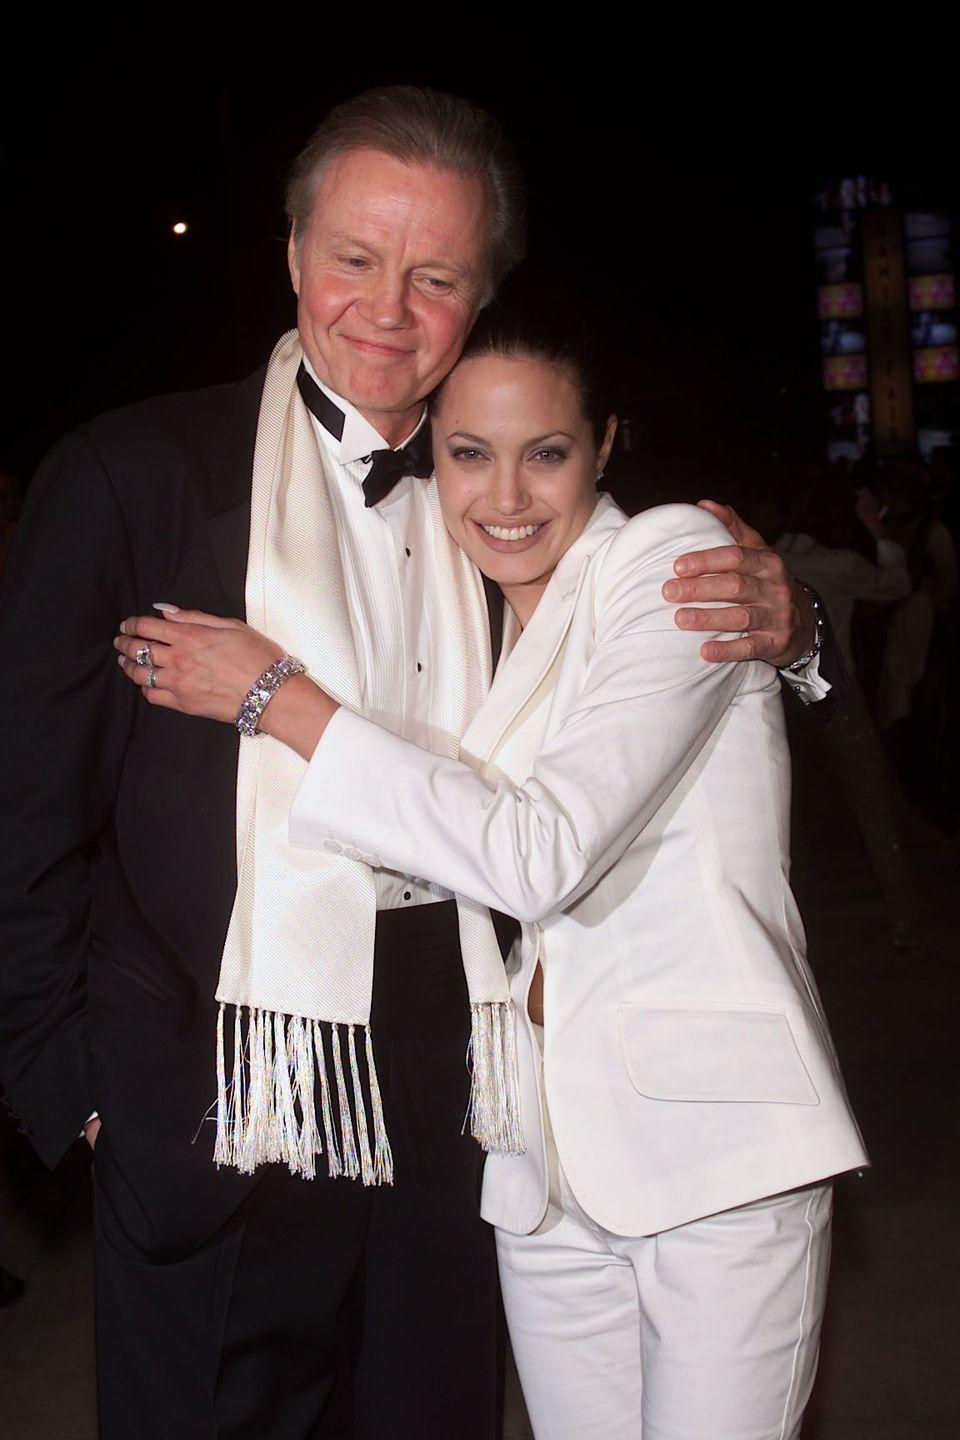 "<p><strong>Famous parent(s)</strong>: actor Jon Voigt<br><strong>What it was like</strong>: Angelina has been open about her tumultuous relationship with her father. ""My father and I don't speak,"" she once <a href=""http://www.dailymail.co.uk/tvshowbiz/article-4501036/Angelina-Jolie-bonds-Jon-Voight-family-dinner.html"" rel=""nofollow noopener"" target=""_blank"" data-ylk=""slk:said"" class=""link rapid-noclick-resp"">said</a>. ""I don't believe that somebody's family becomes their blood. Because my son's adopted, and families are earned.""</p>"